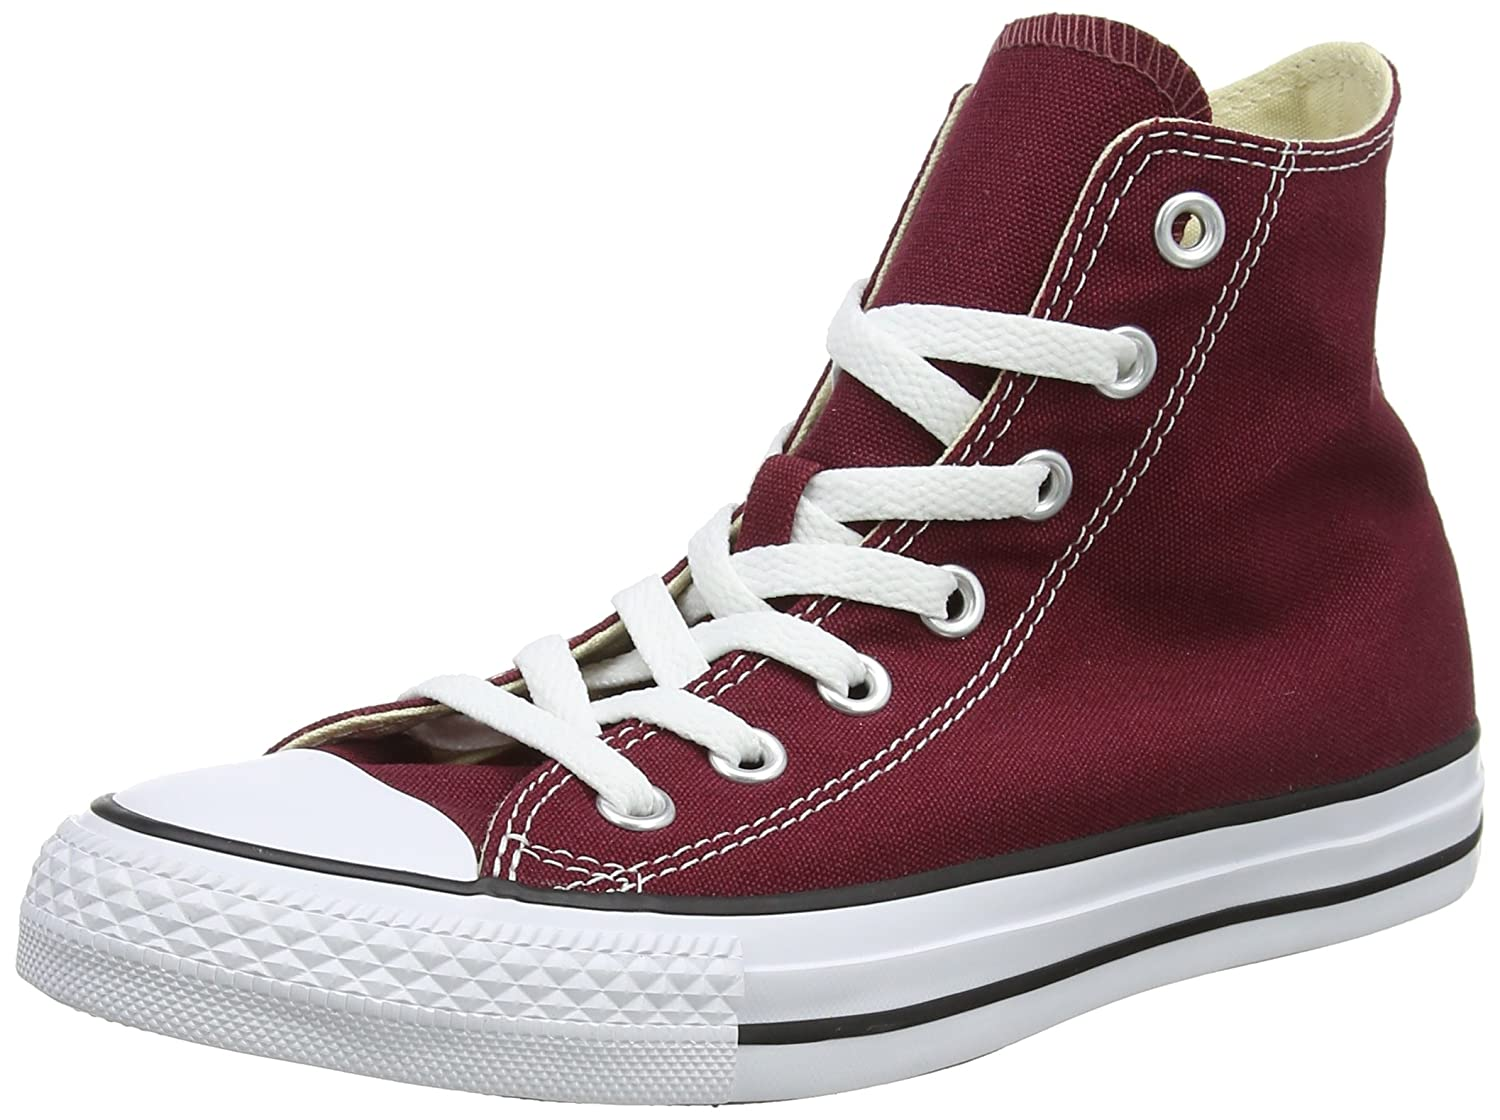 Converse Unisex Chuck Taylor All-Star High-Top Casual Sneakers in Classic Style and Color and Durable Canvas Uppers B000P33LY4 4.5 D(M) US|Maroon